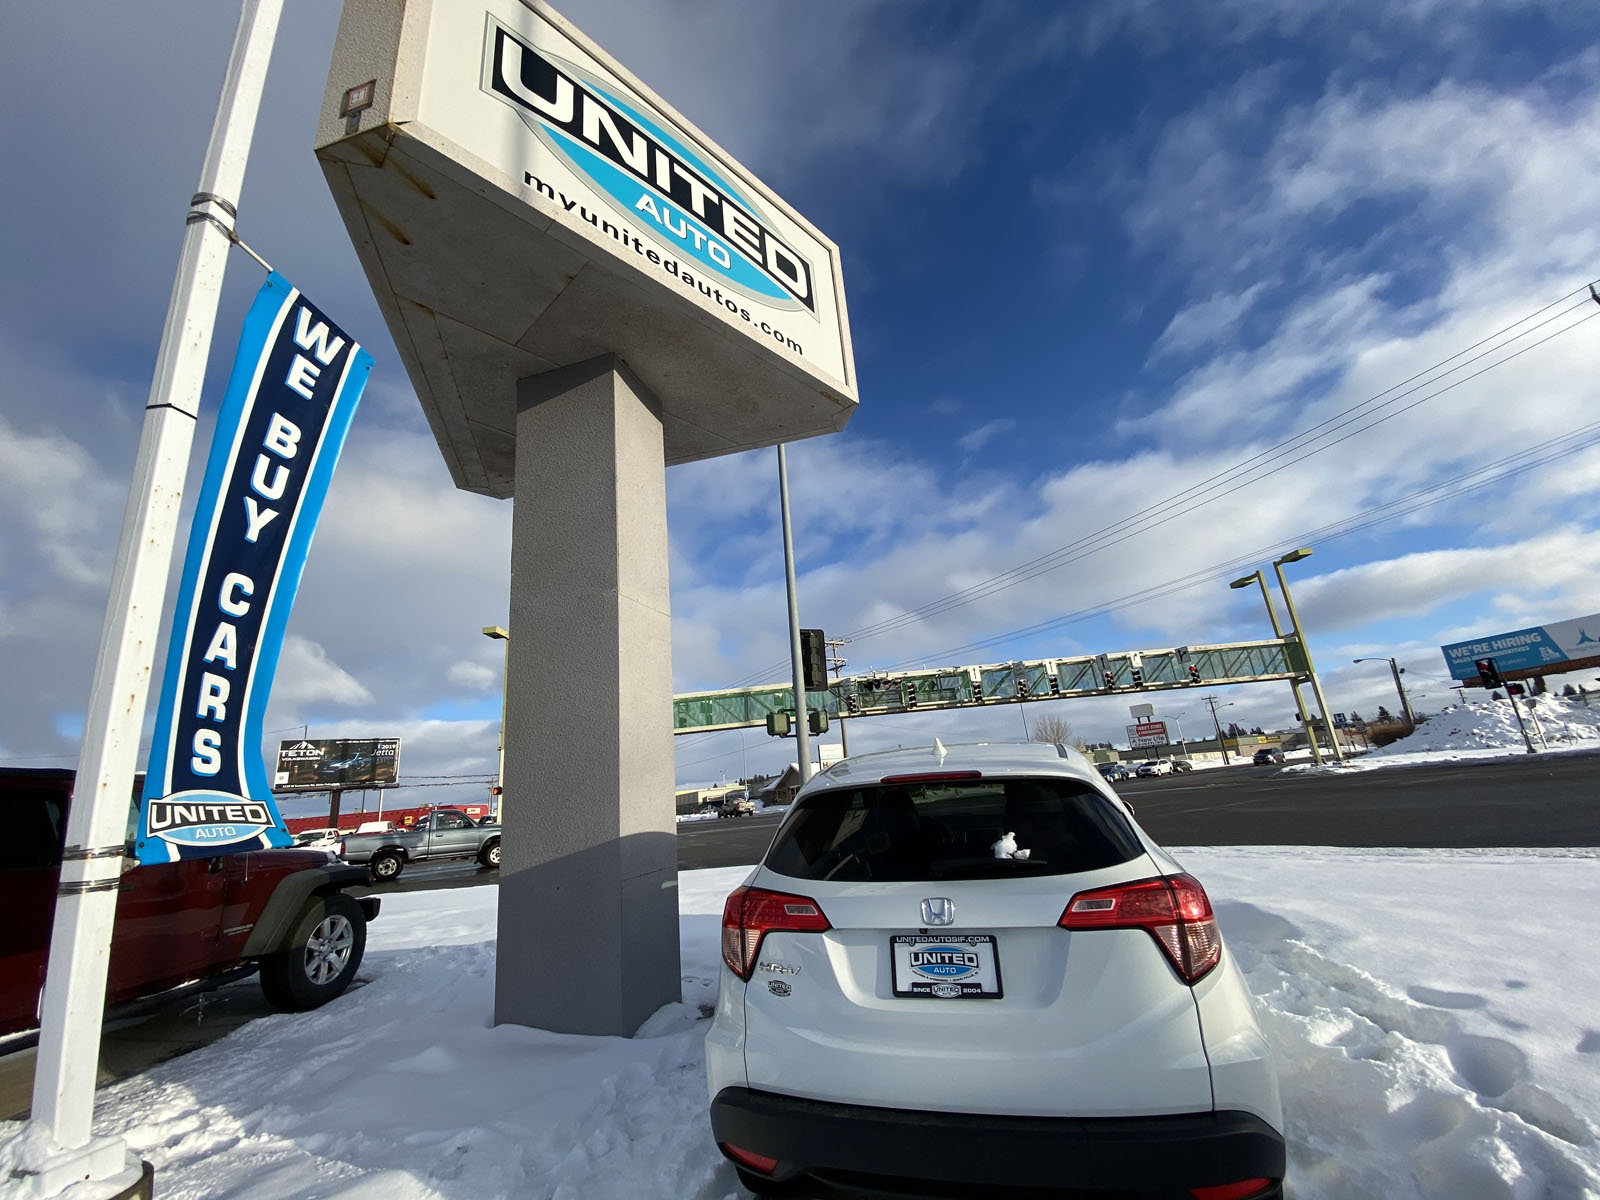 United Auto Sales car lot in winter covered with snow